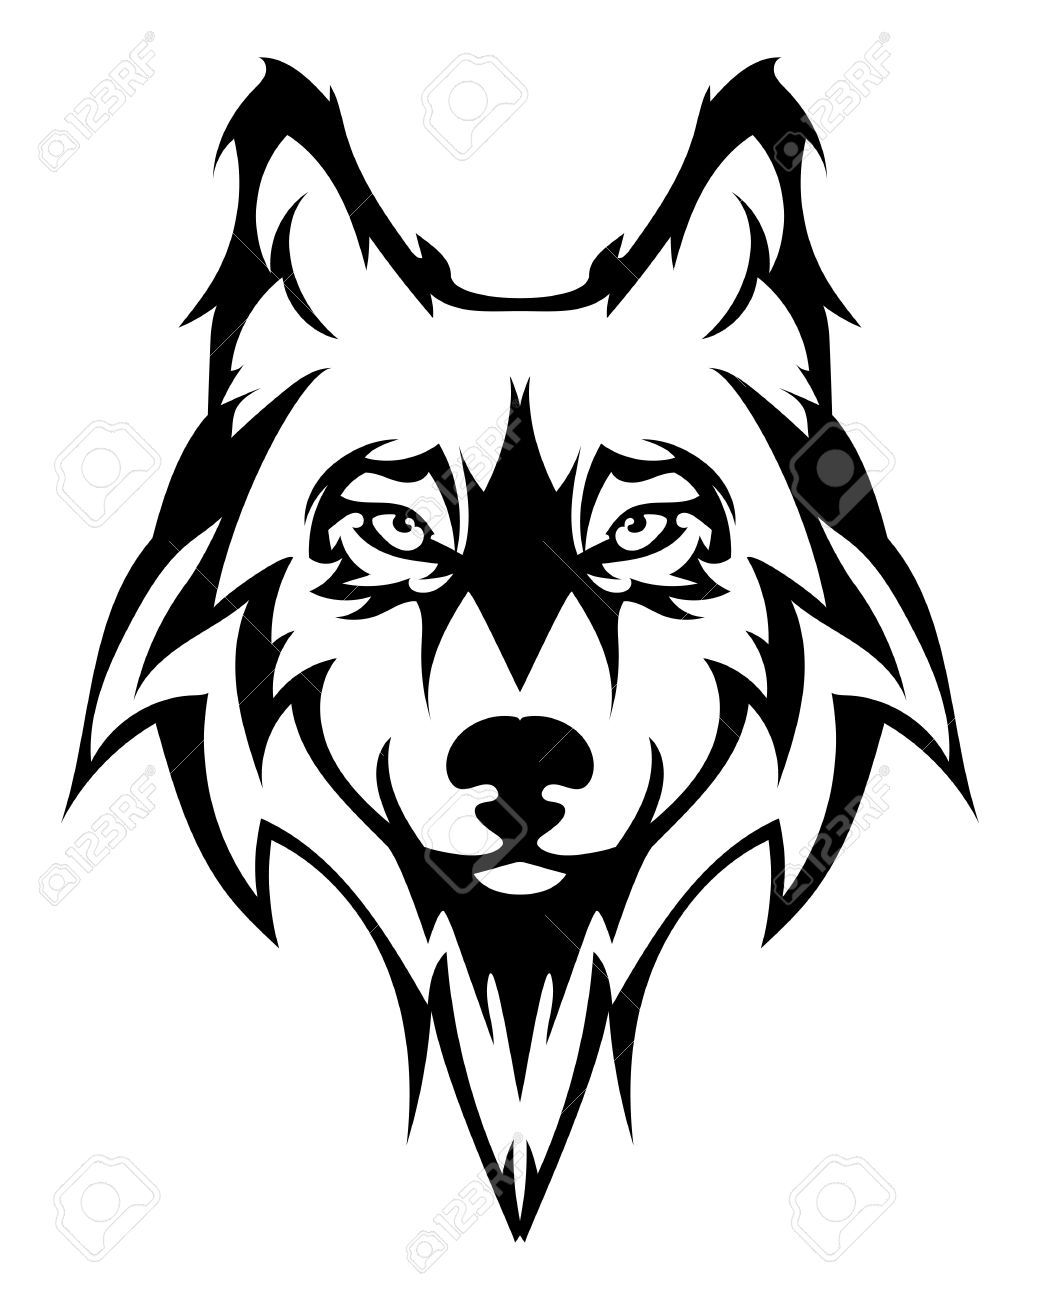 ba49af96bb4b0 wolf face: Beautiful wolf tattoo.Vector wolfs head as a design element on  isolated